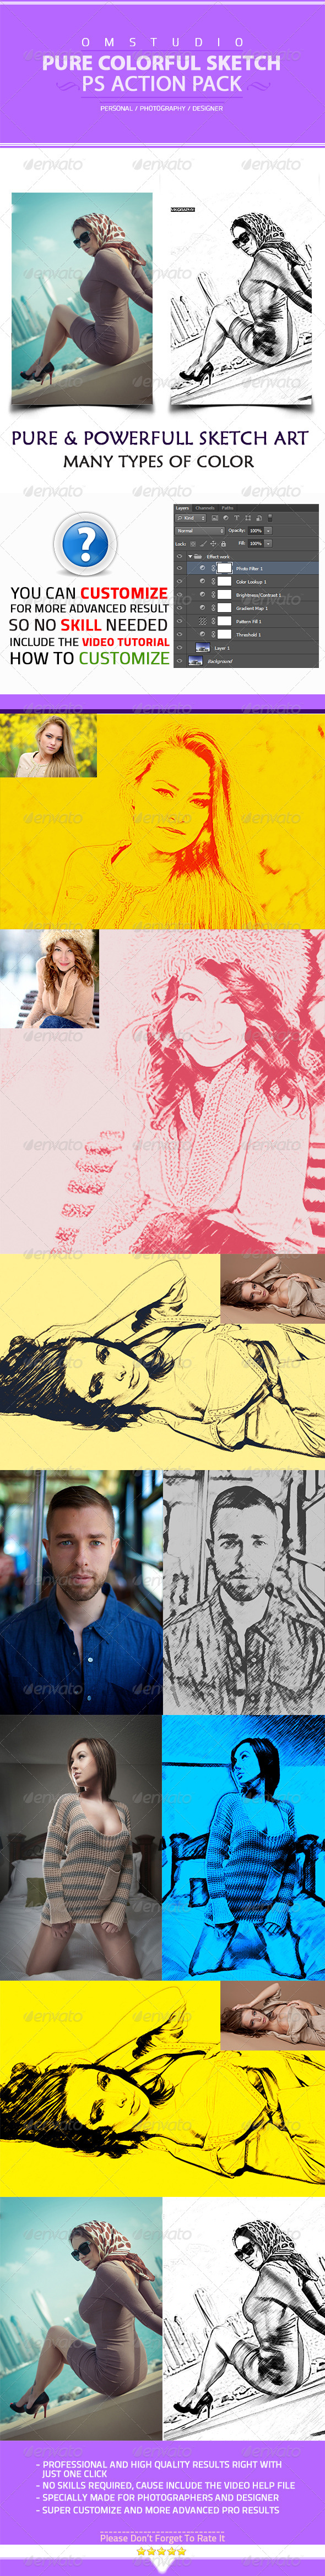 GraphicRiver Pure Colorful Sketch Art Photoshop Action 5843903